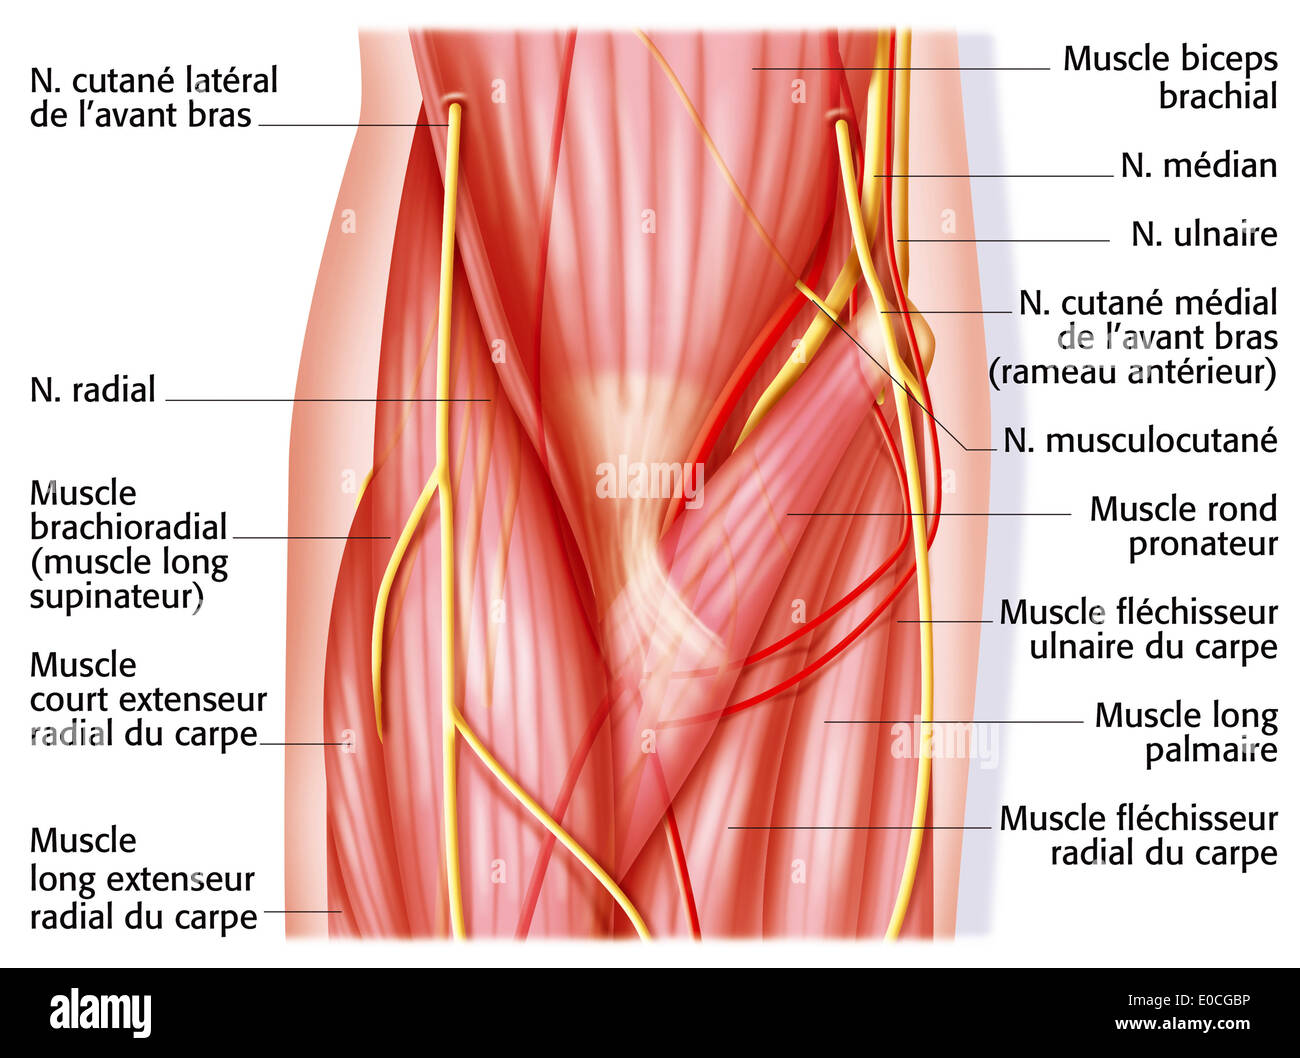 Elbow, anatomy Stock Photo: 69117770 - Alamy